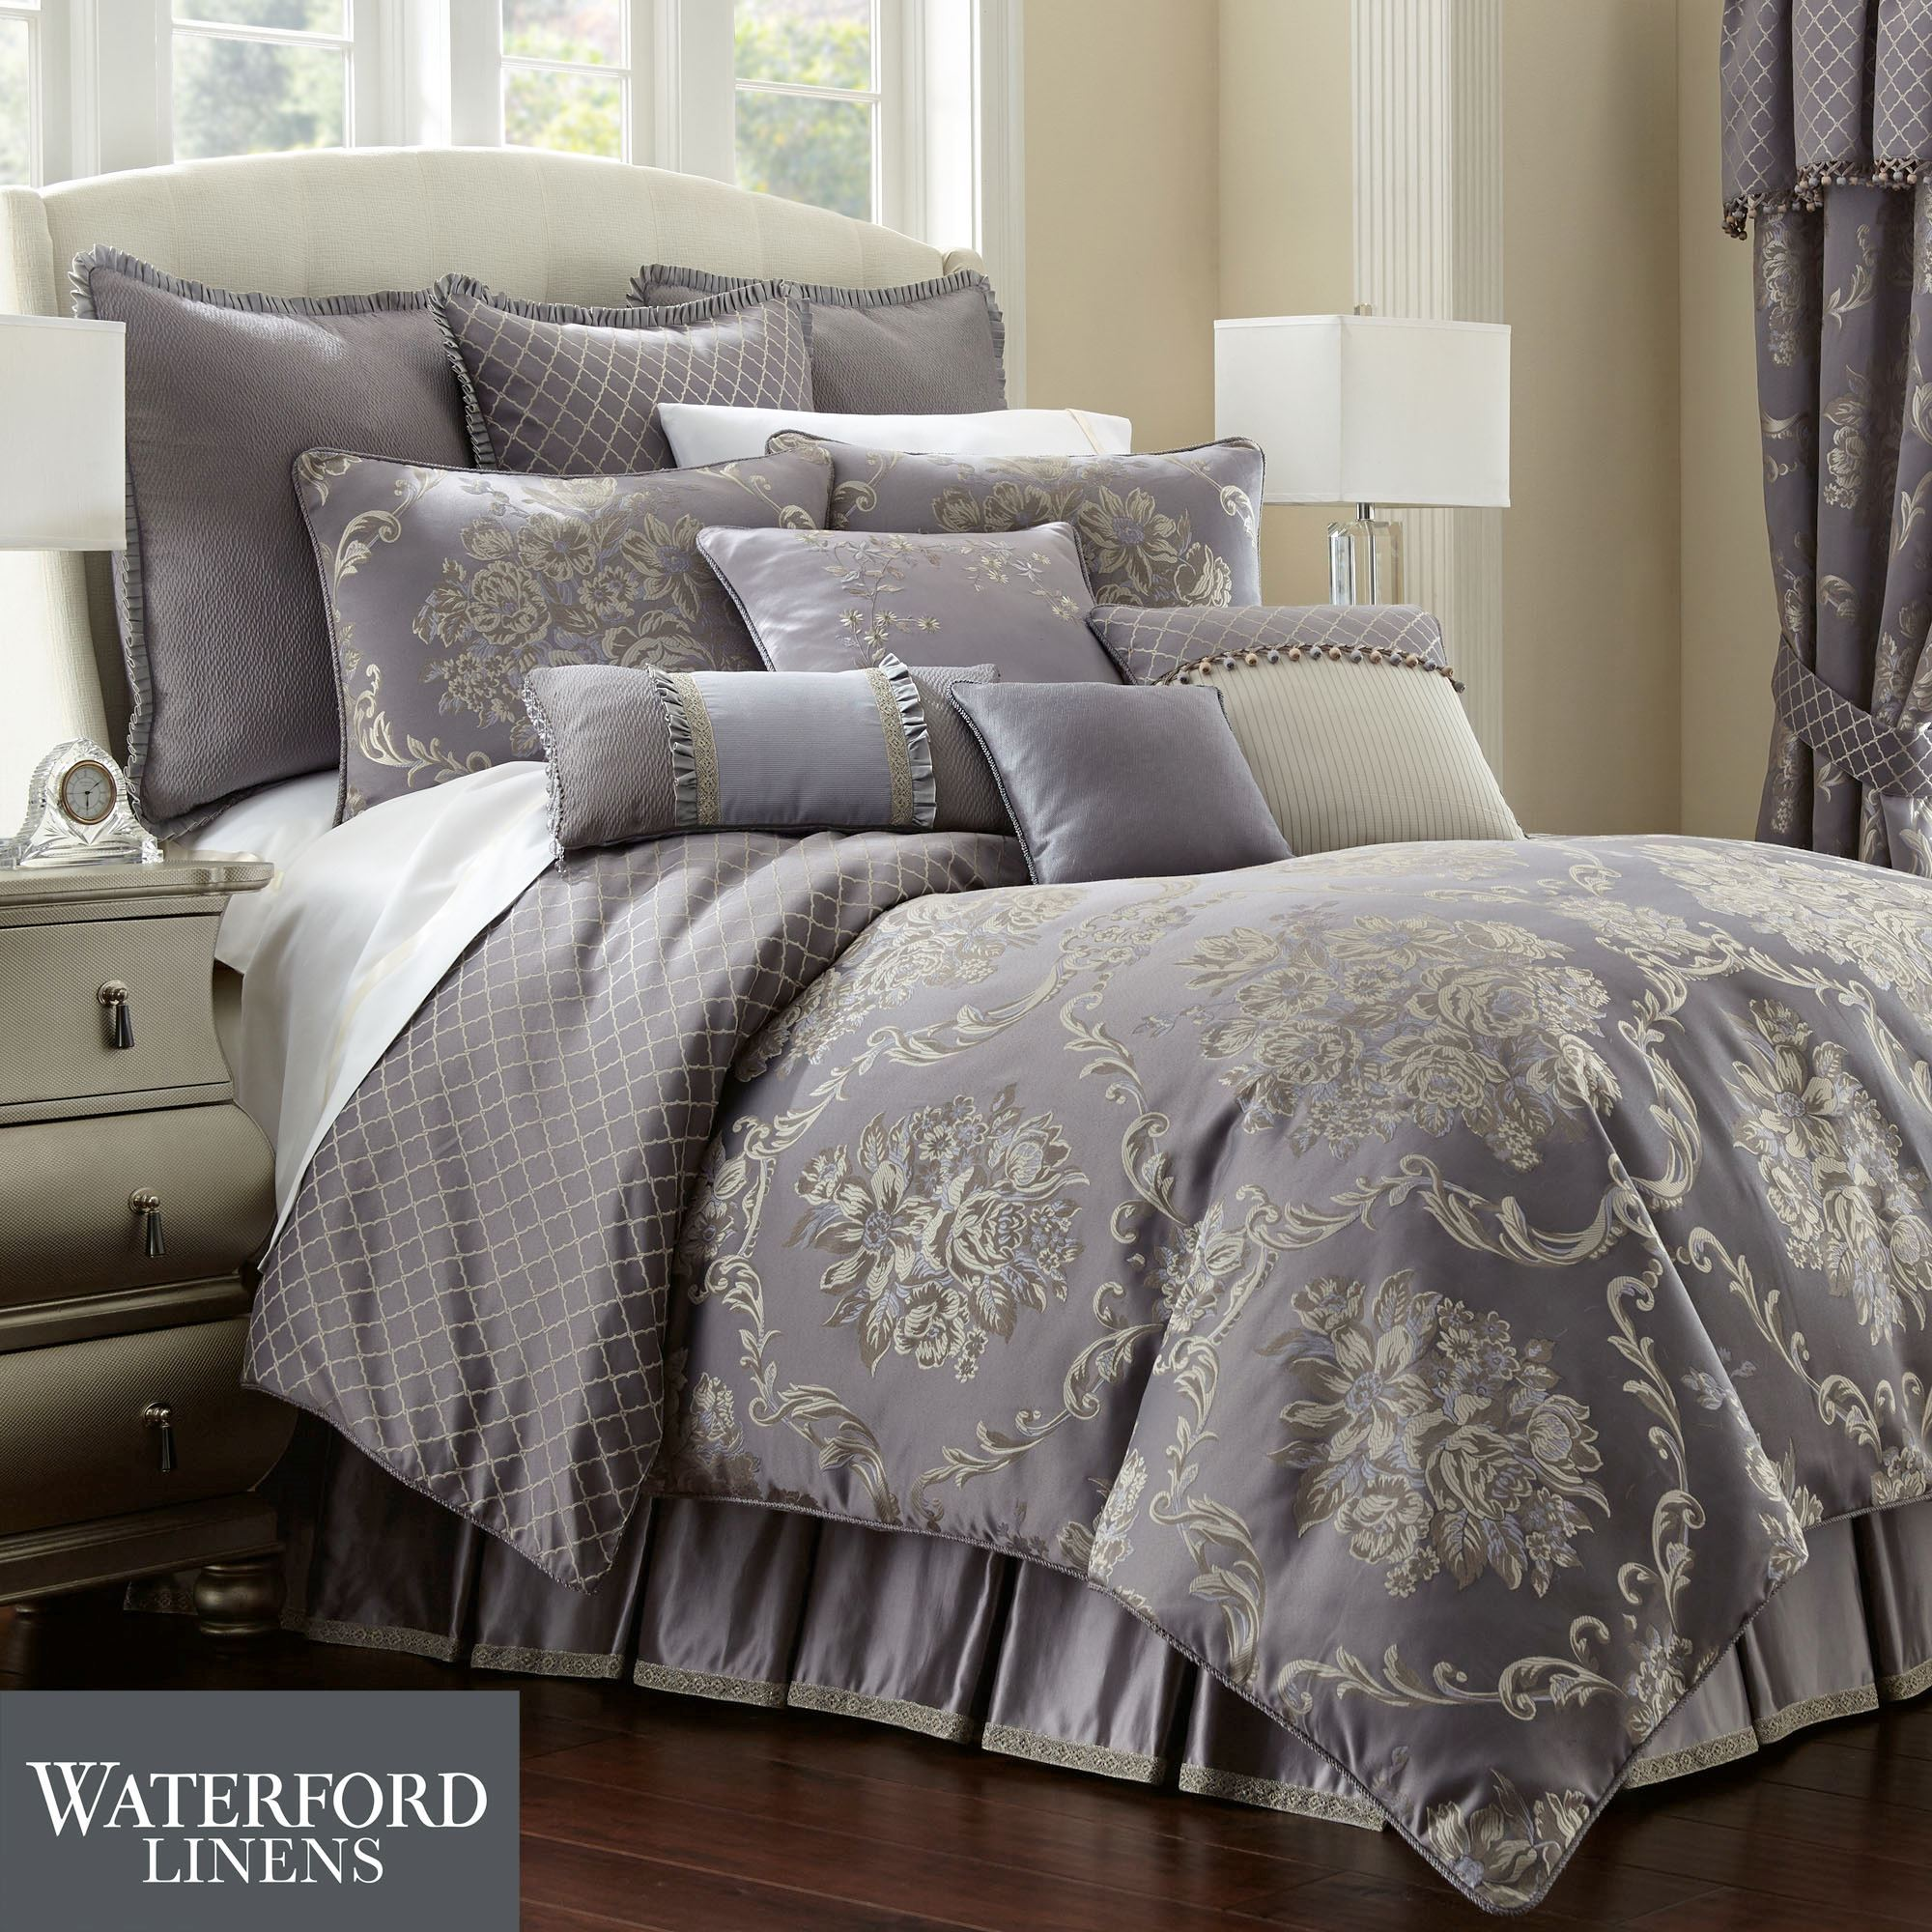 on purple in a cheap alicemall quotations bedding deals at bed ultra checkered countryside shopping bedspread find line get soft guides set quilt bag pastoral